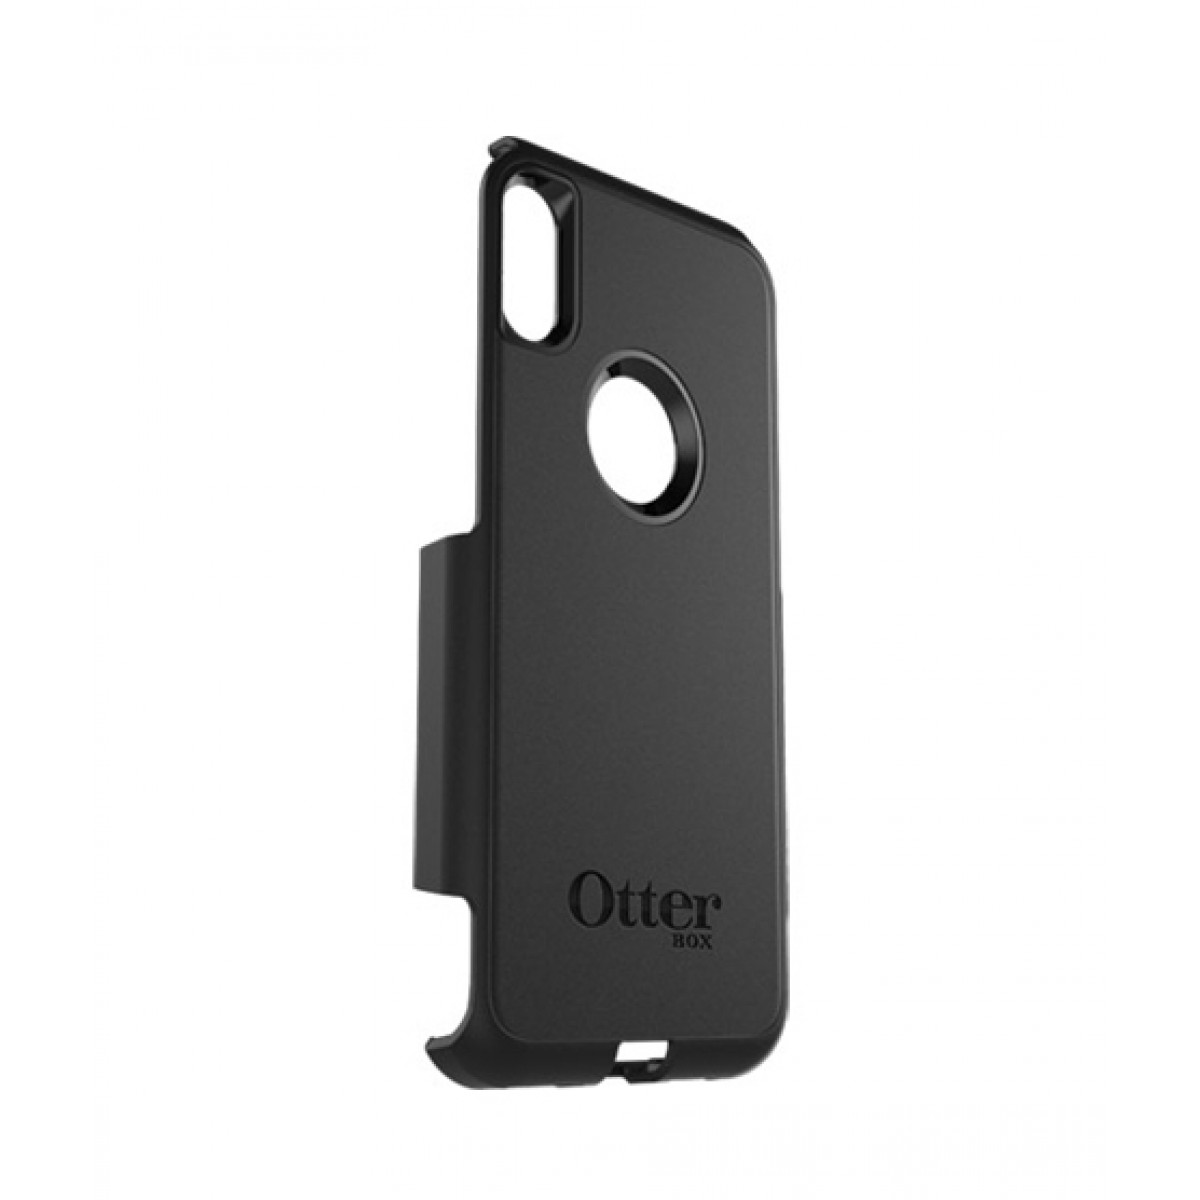 huge selection of 486fe abf7f OtterBox Commuter Series Shell Black Case For iPhone X/XS